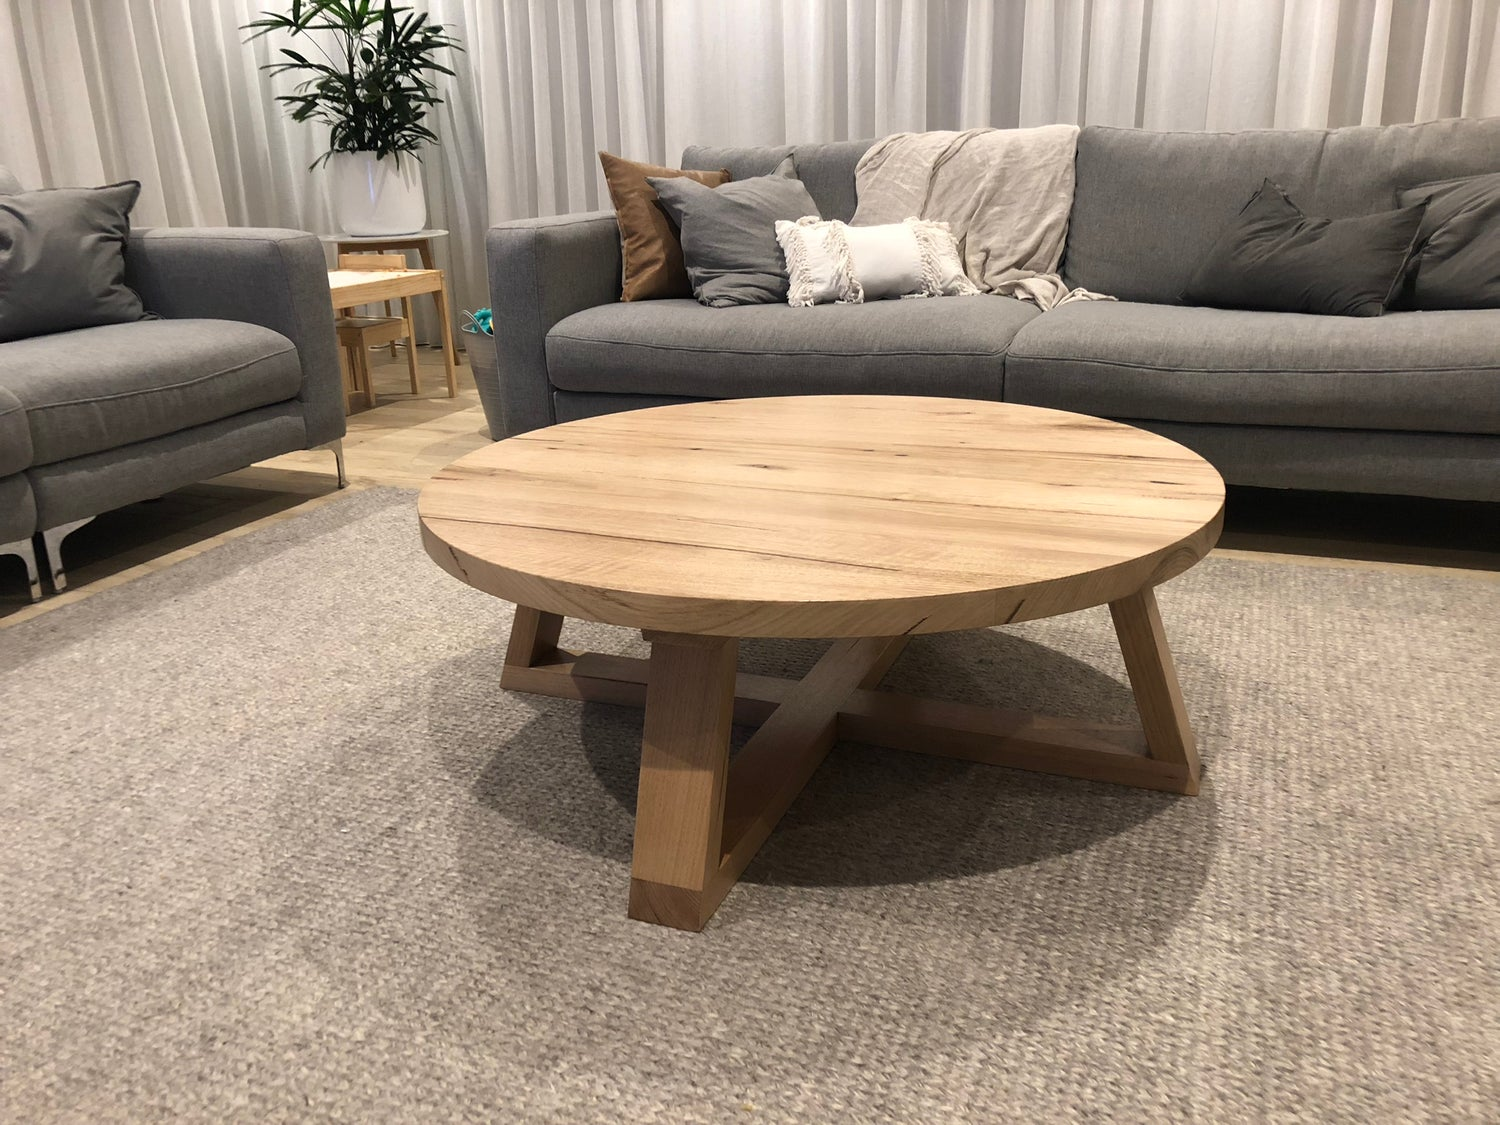 Image of Circle Coffee Table